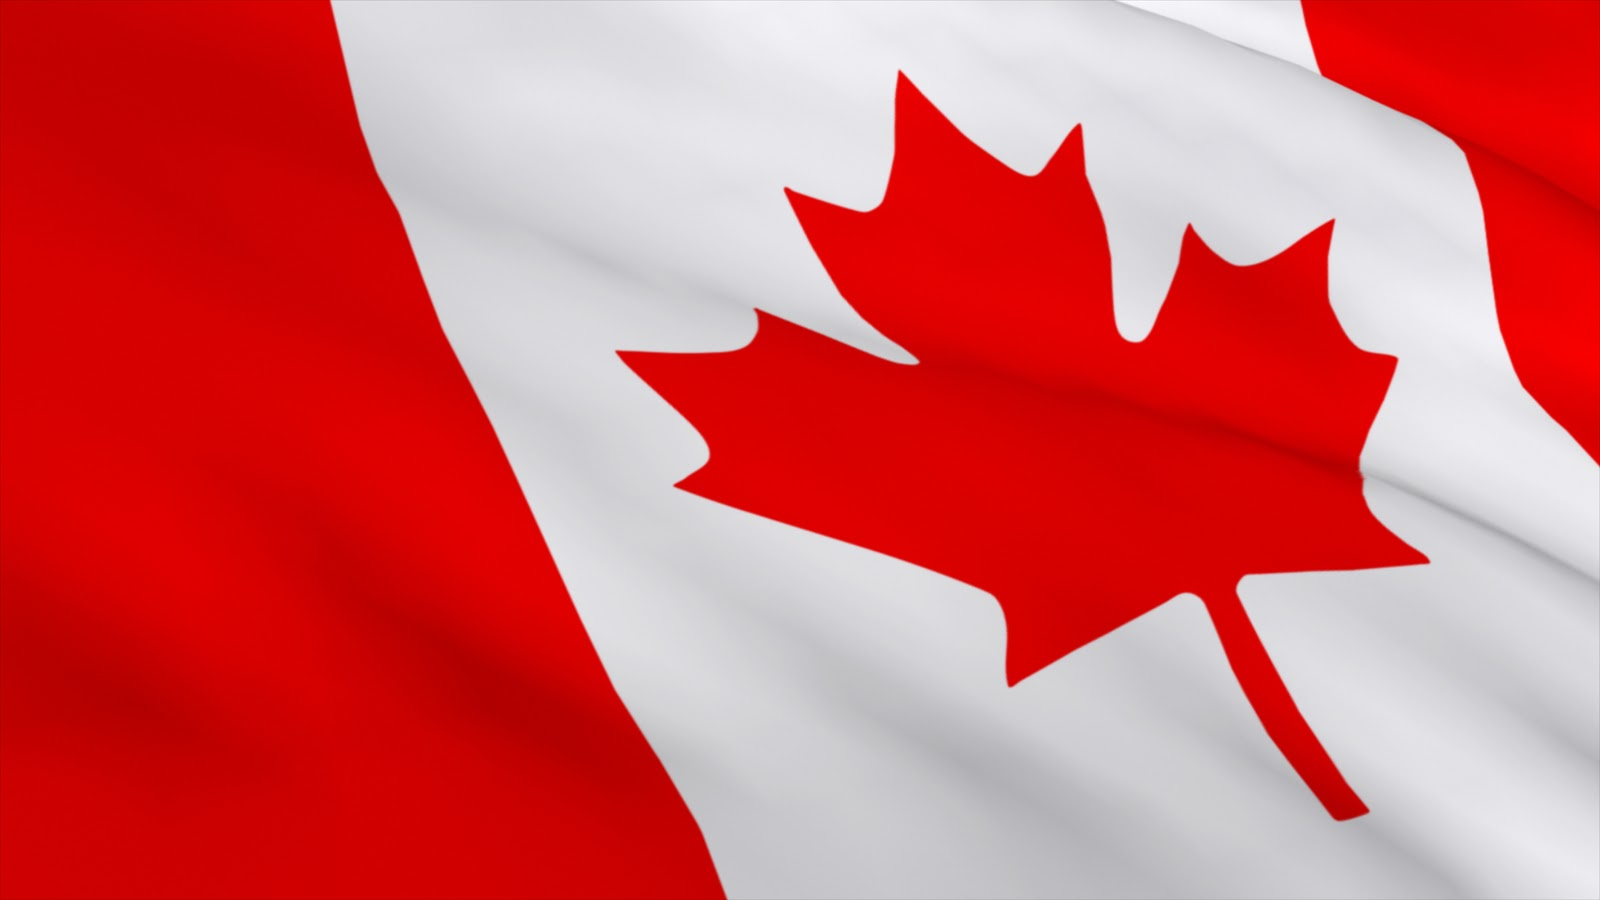 Canada-National-Flag-Wallpapers-Images